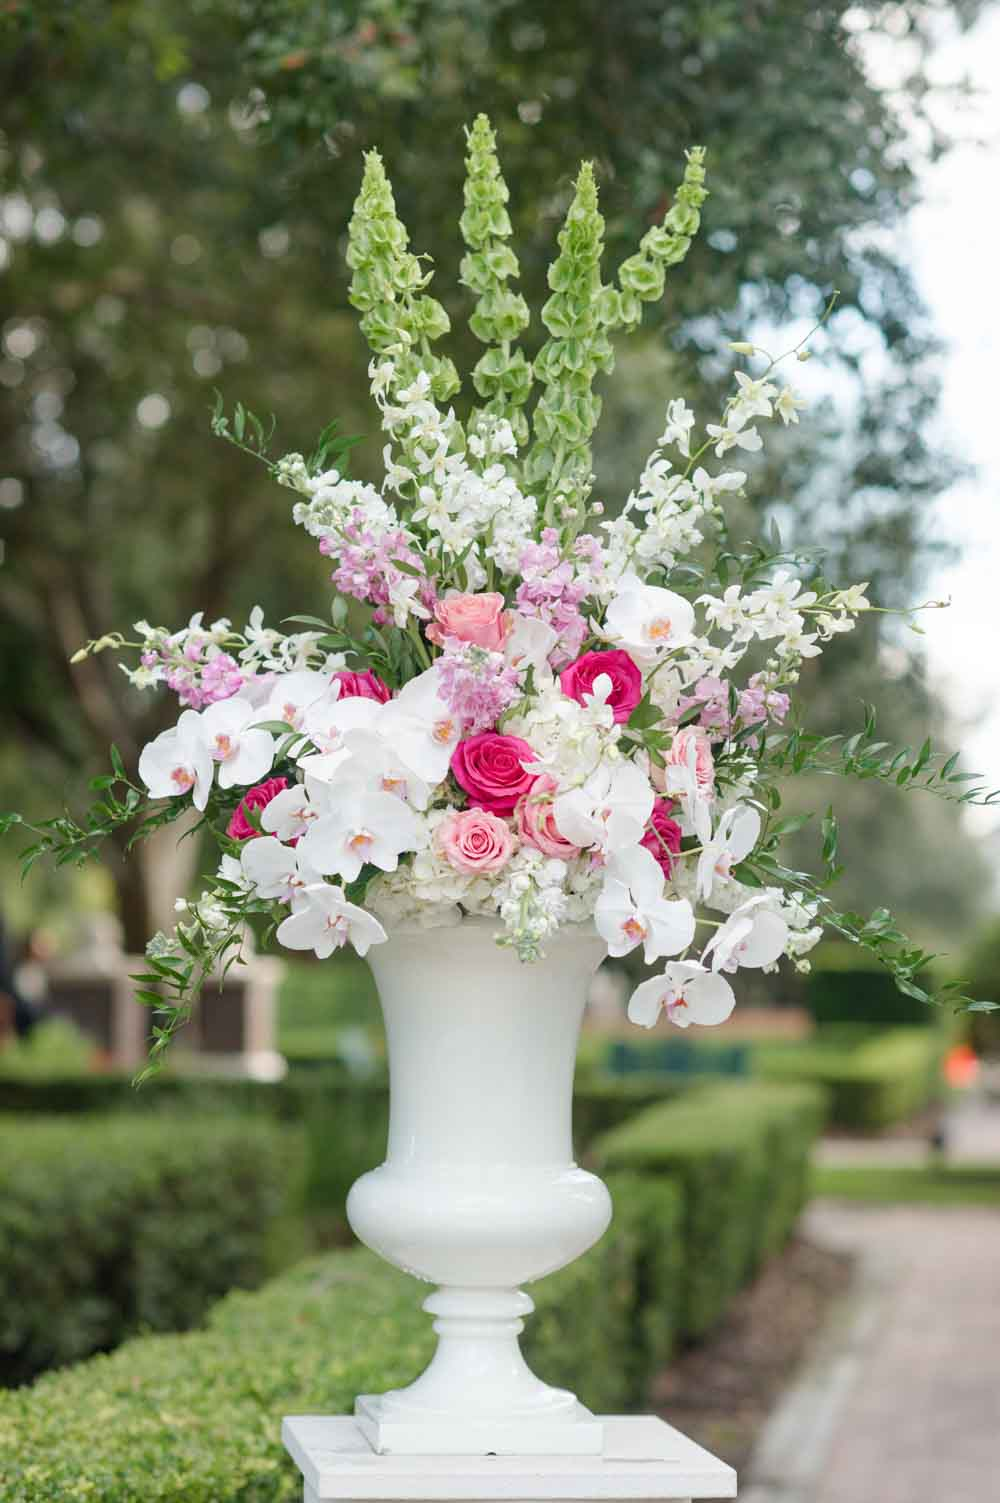 large wedding ceremony floral arrangement on white pedestal